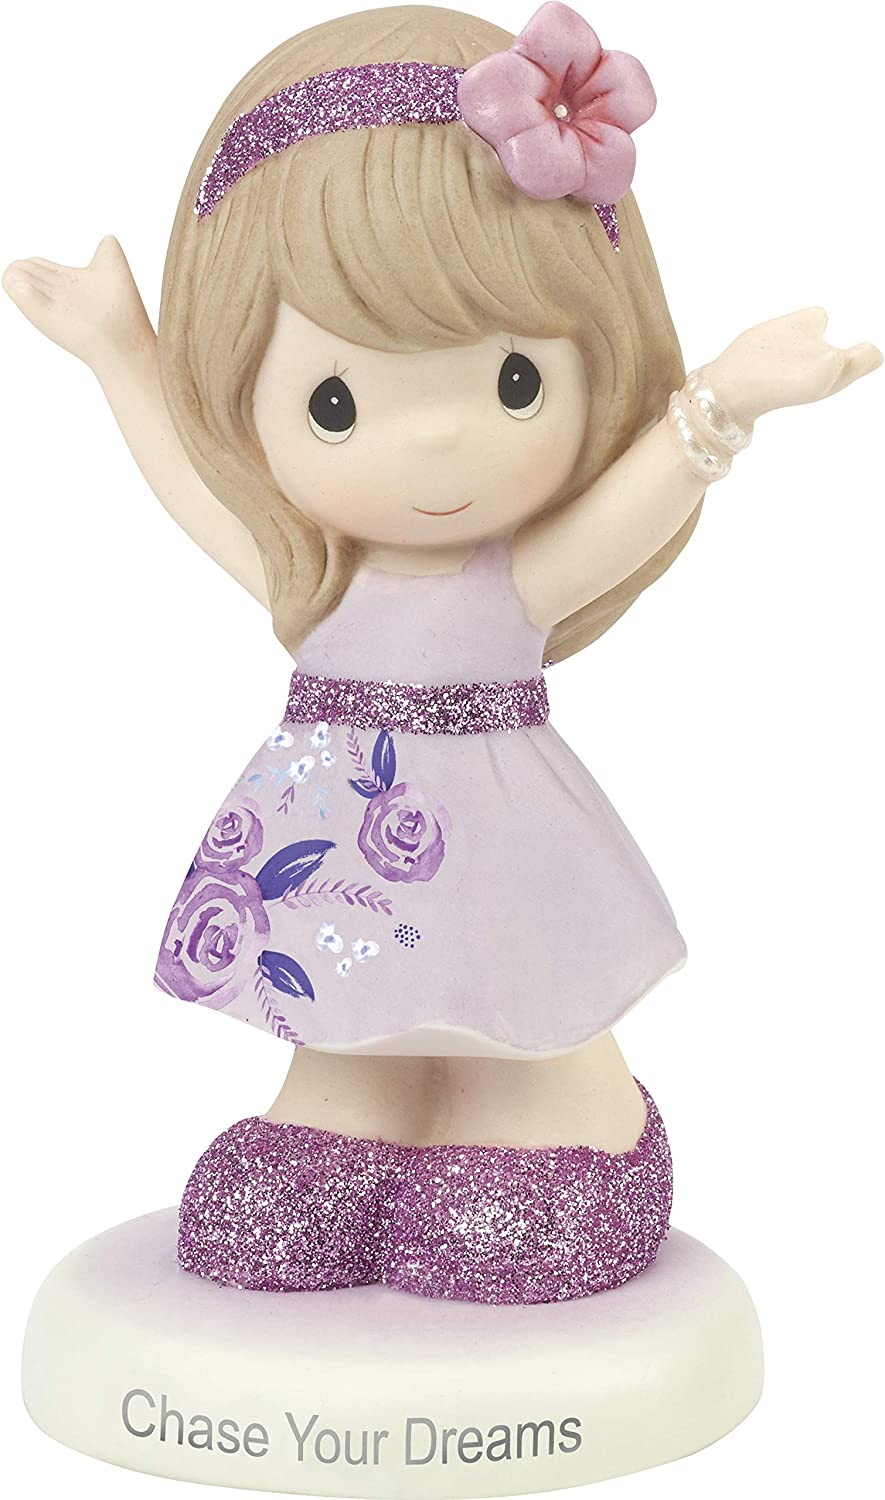 Precious Moments Chase Your Dreams Girl in Floral Dress Bisque PorcelainFigurine 182003